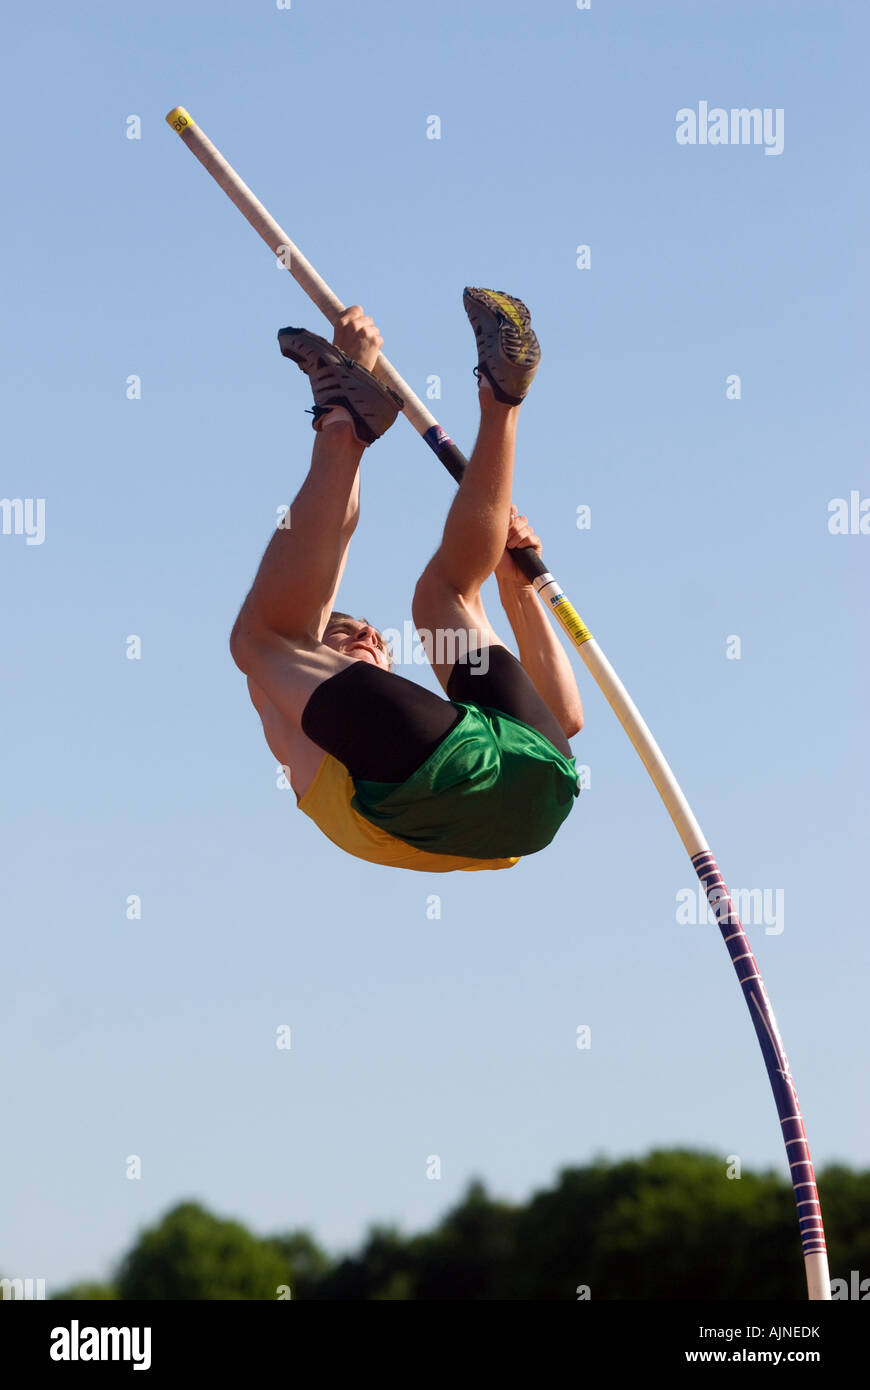 Pole vaulter during a high school track meet in the USA - Stock Image